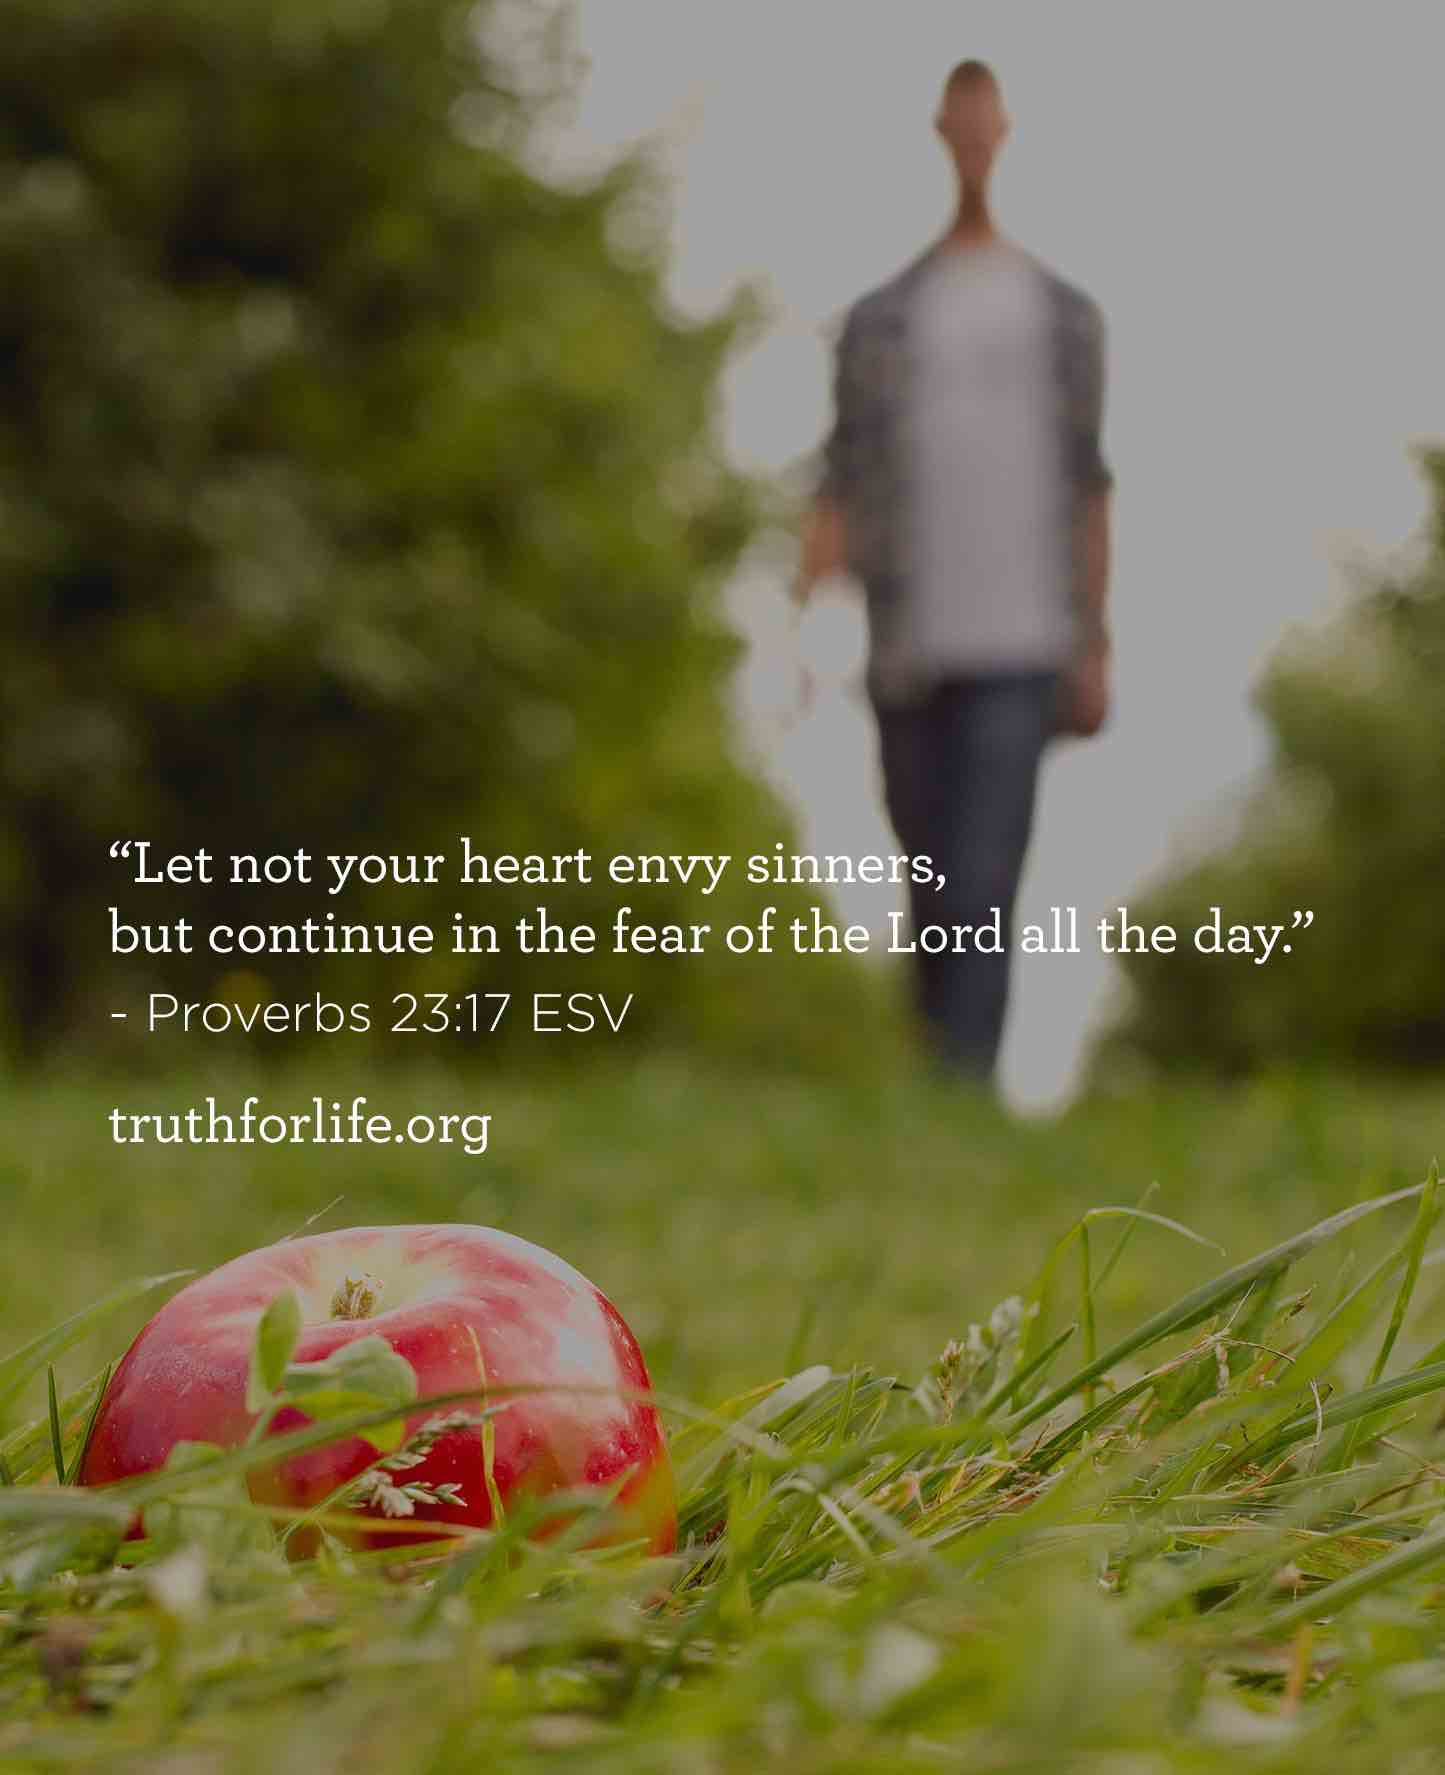 thumbnail image for Let not your heart envy sinners, but continue in the fear of the Lord